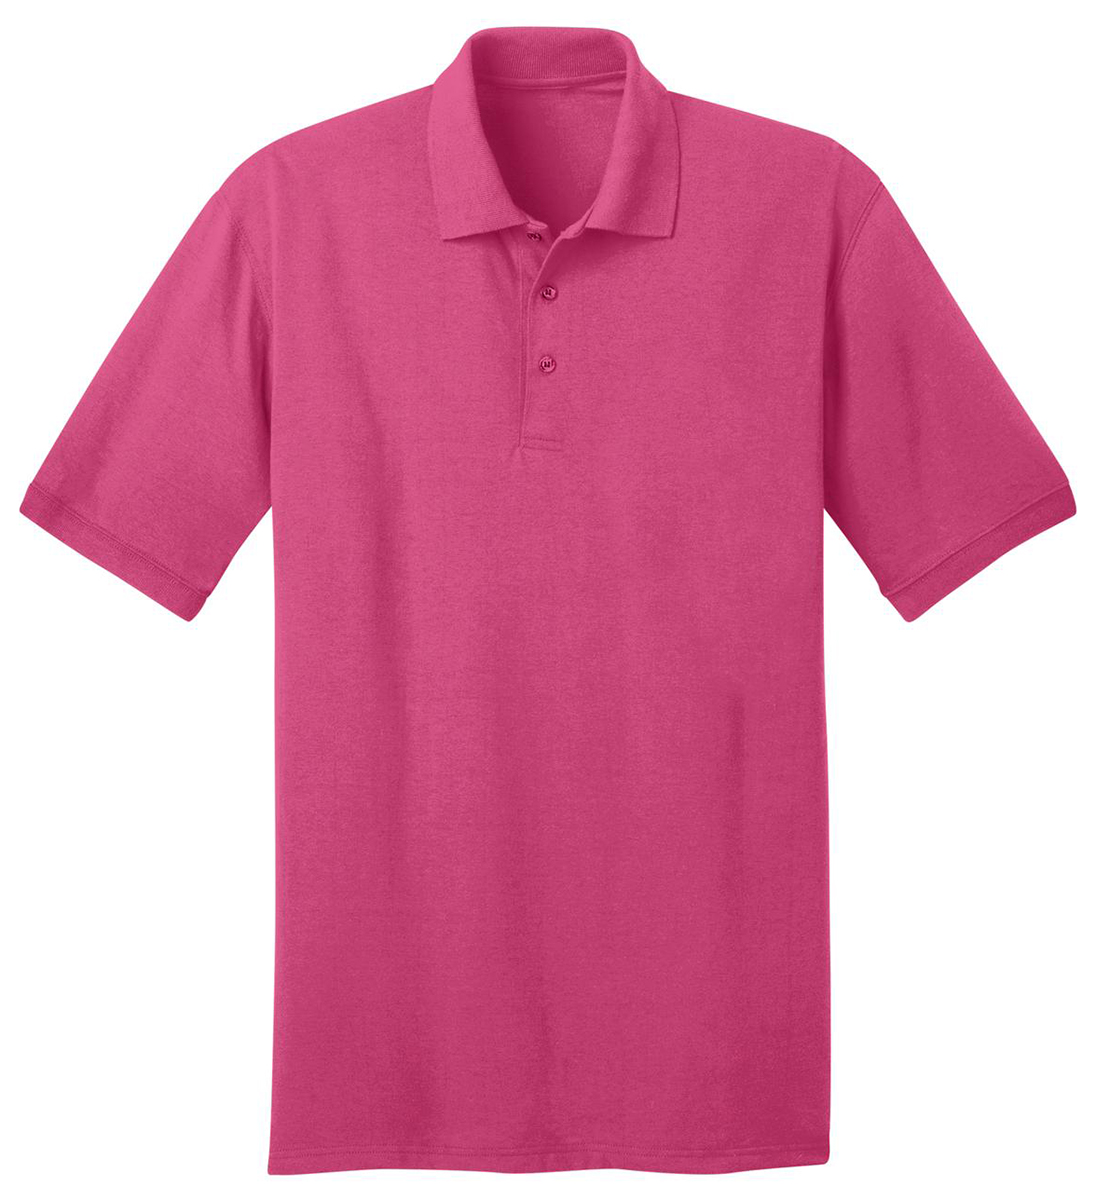 Port company men 39 s big tall casual short sleeve golf for Large tall golf shirts